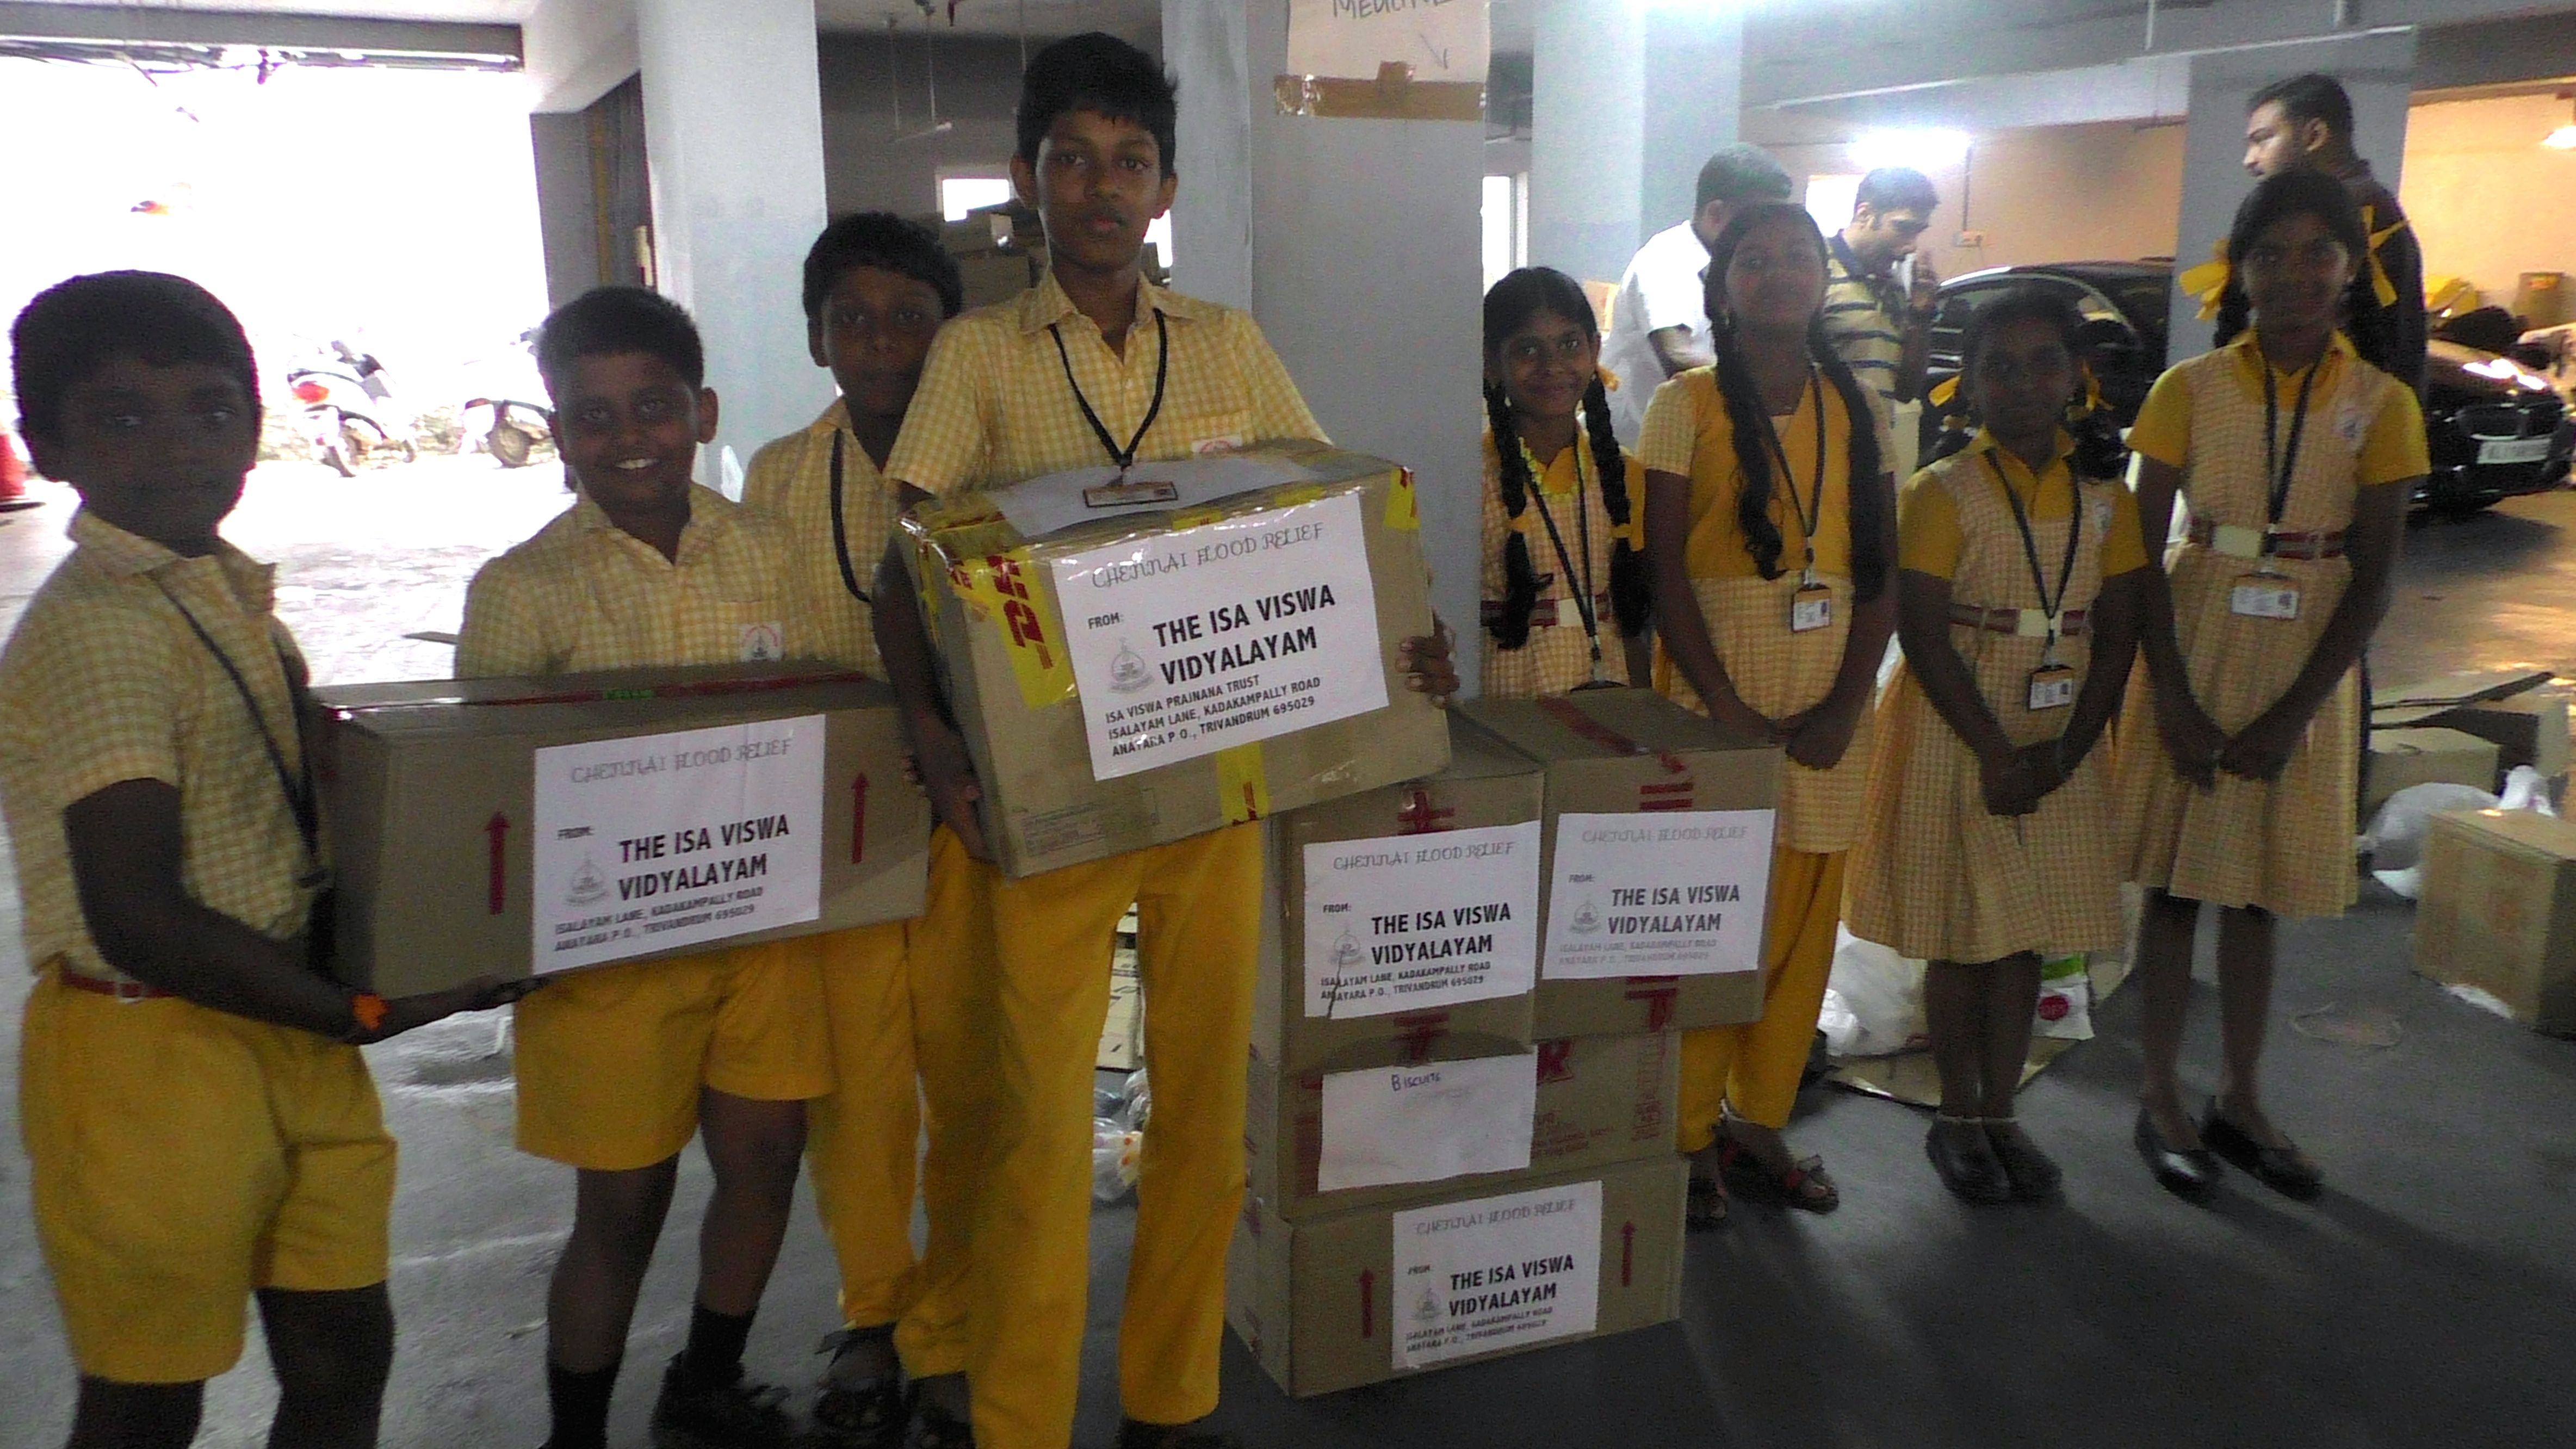 Students of Isa Viswa Vidyalayam giving food to Chennai flood relief efforts